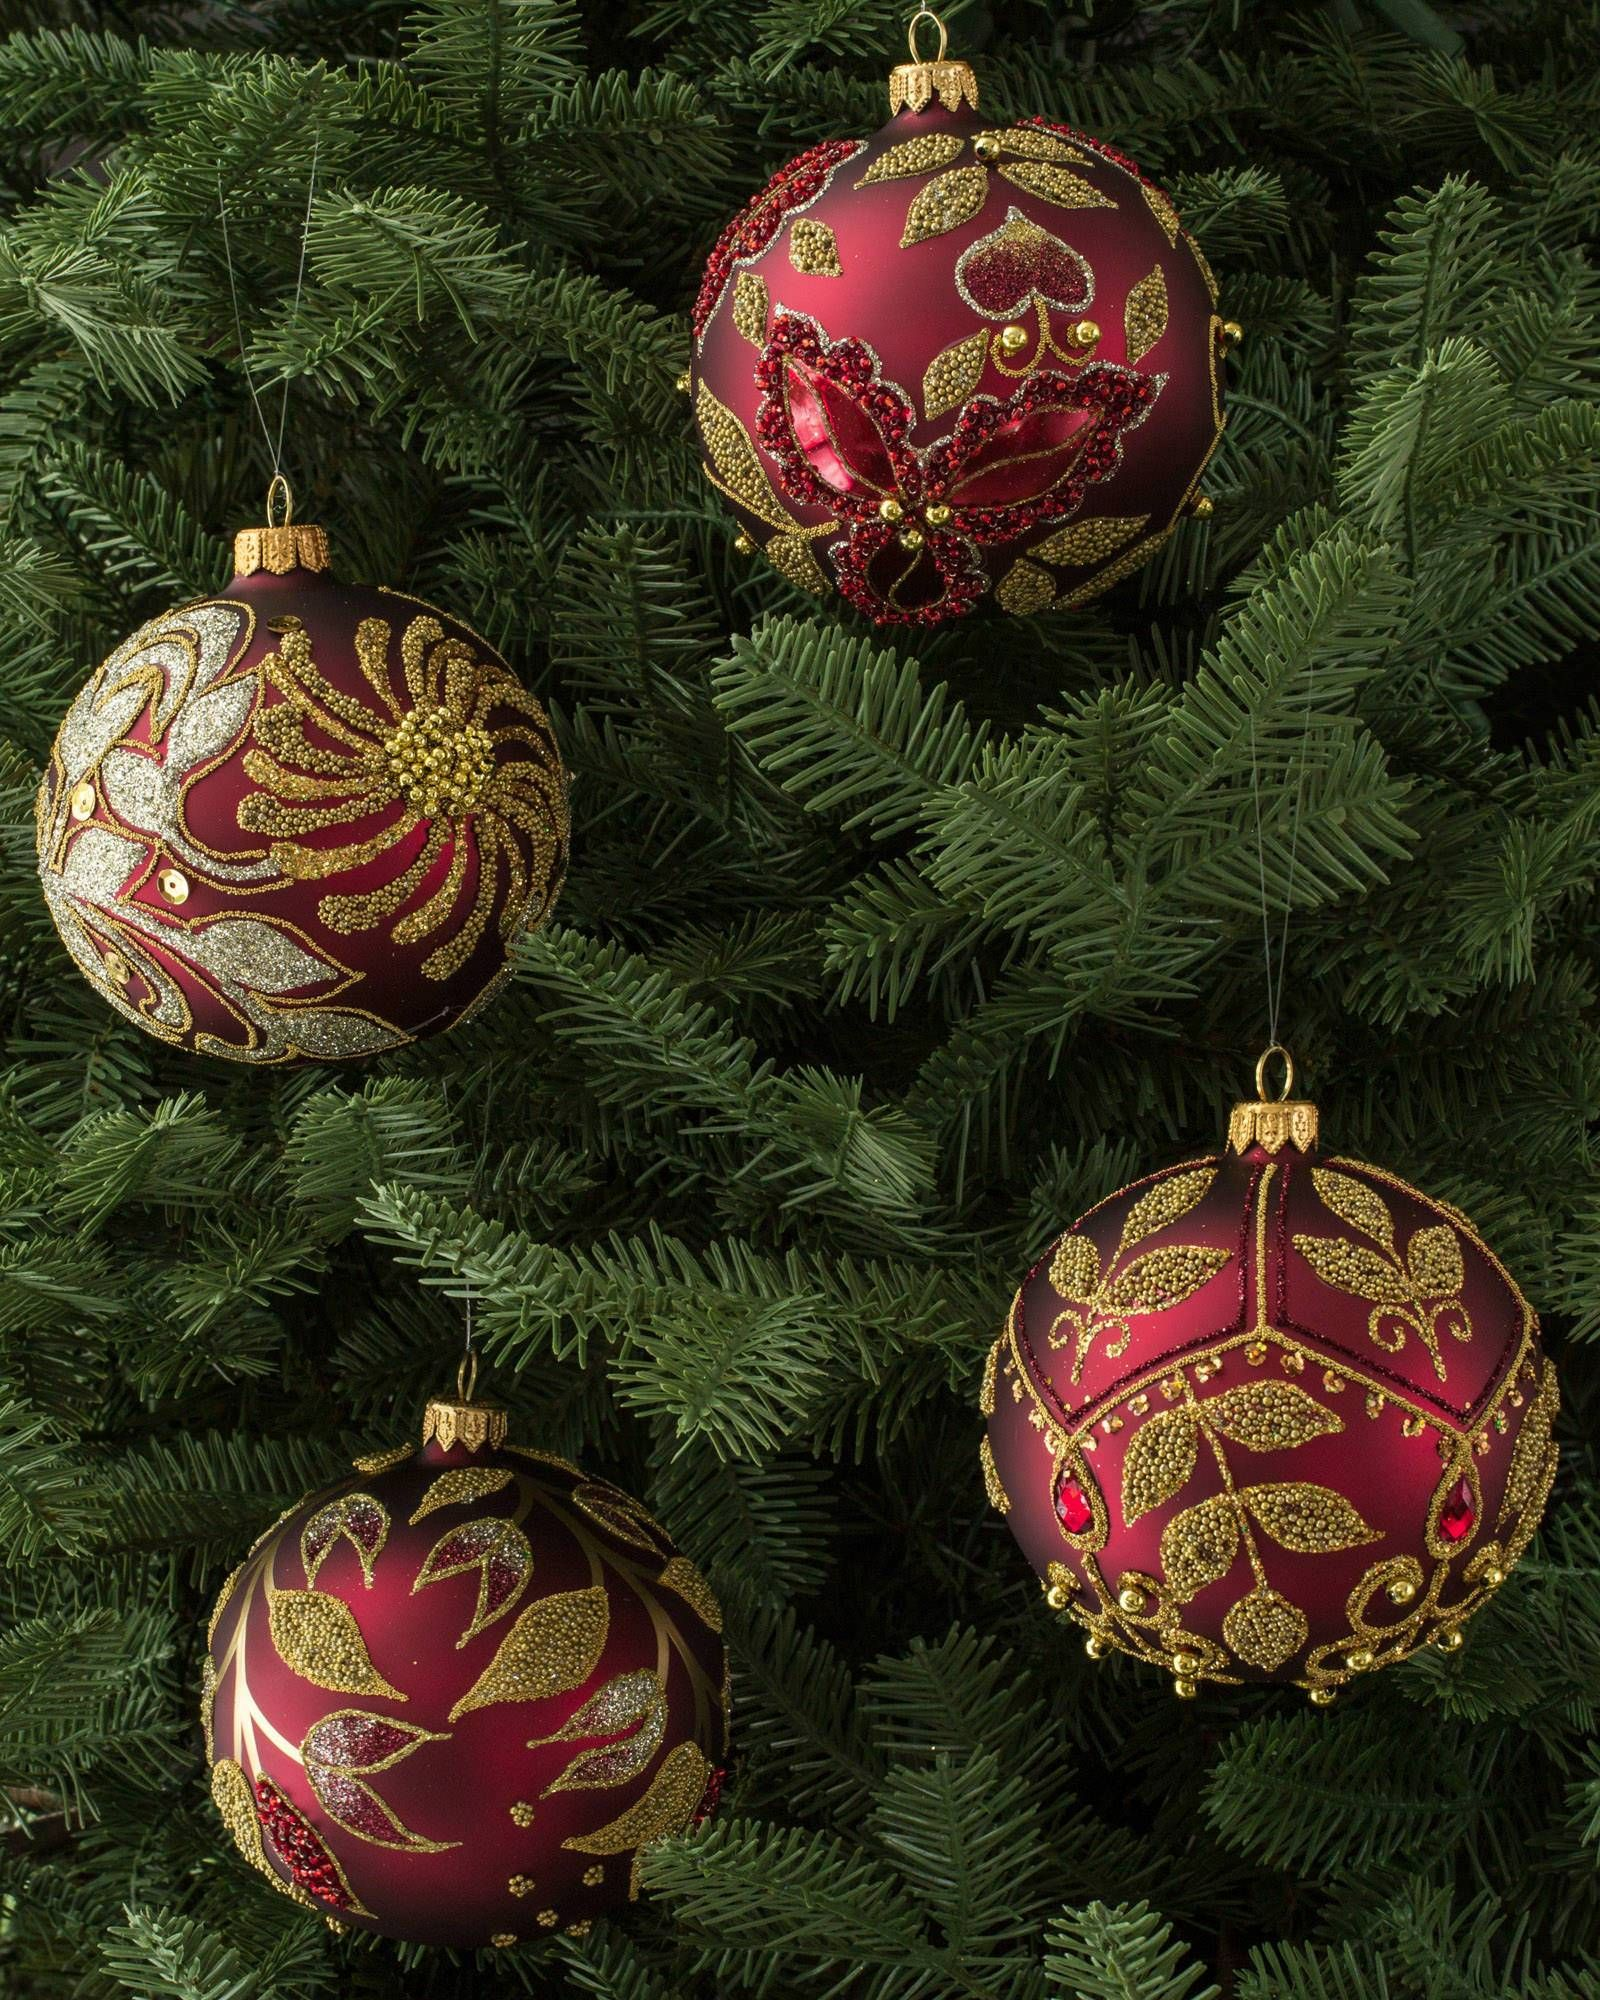 Decorating Glass Ball Ornaments Burgundy And Gold Decorated Glass Ball Ornament Set 4 Pieces Main